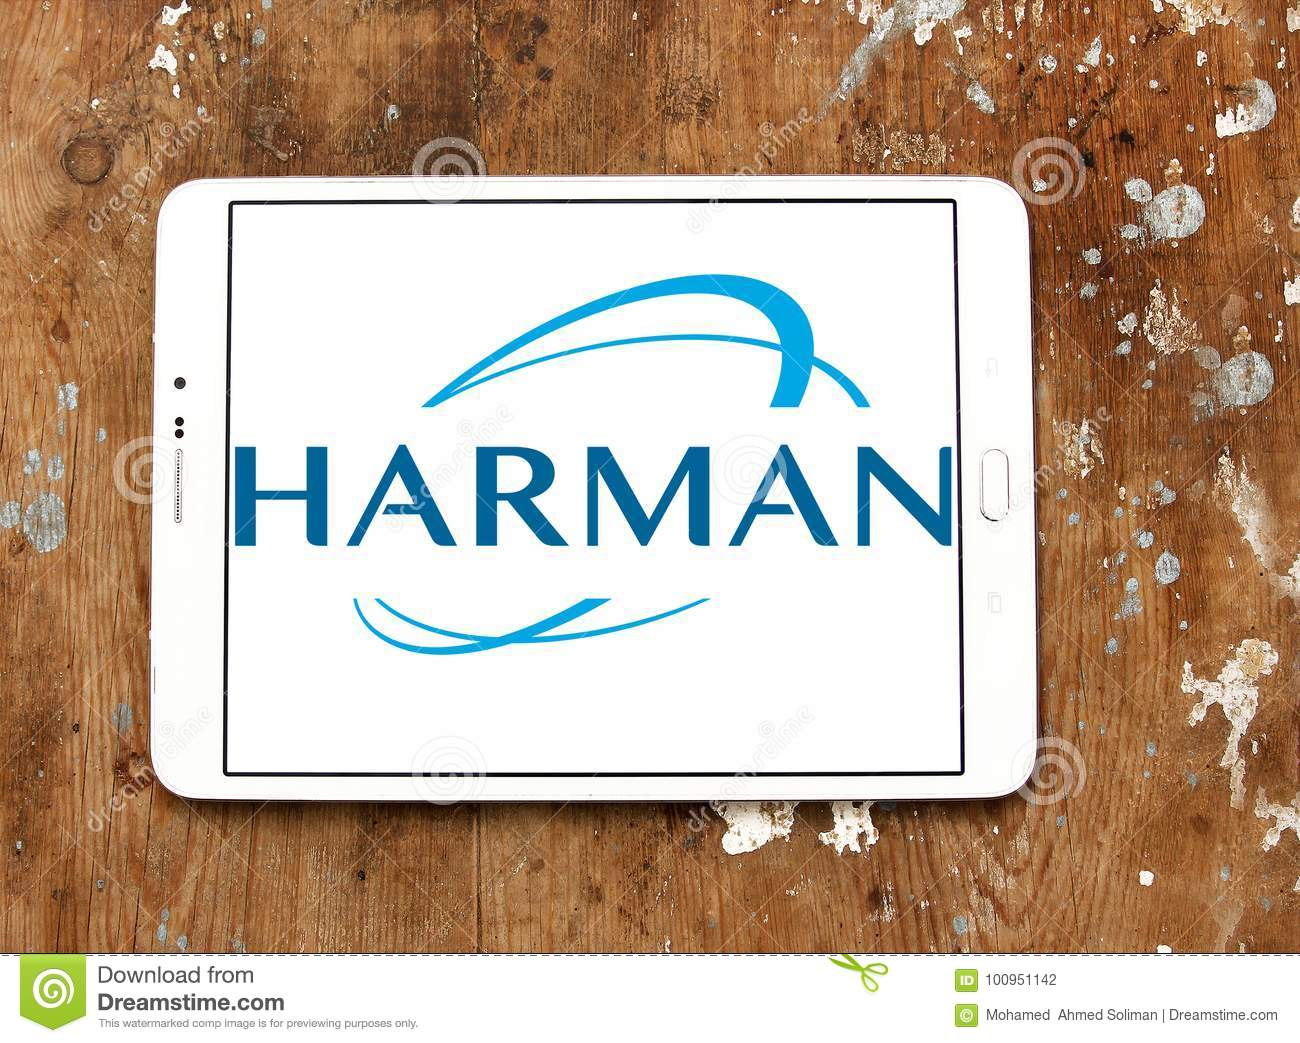 Harman International Industries-embleem